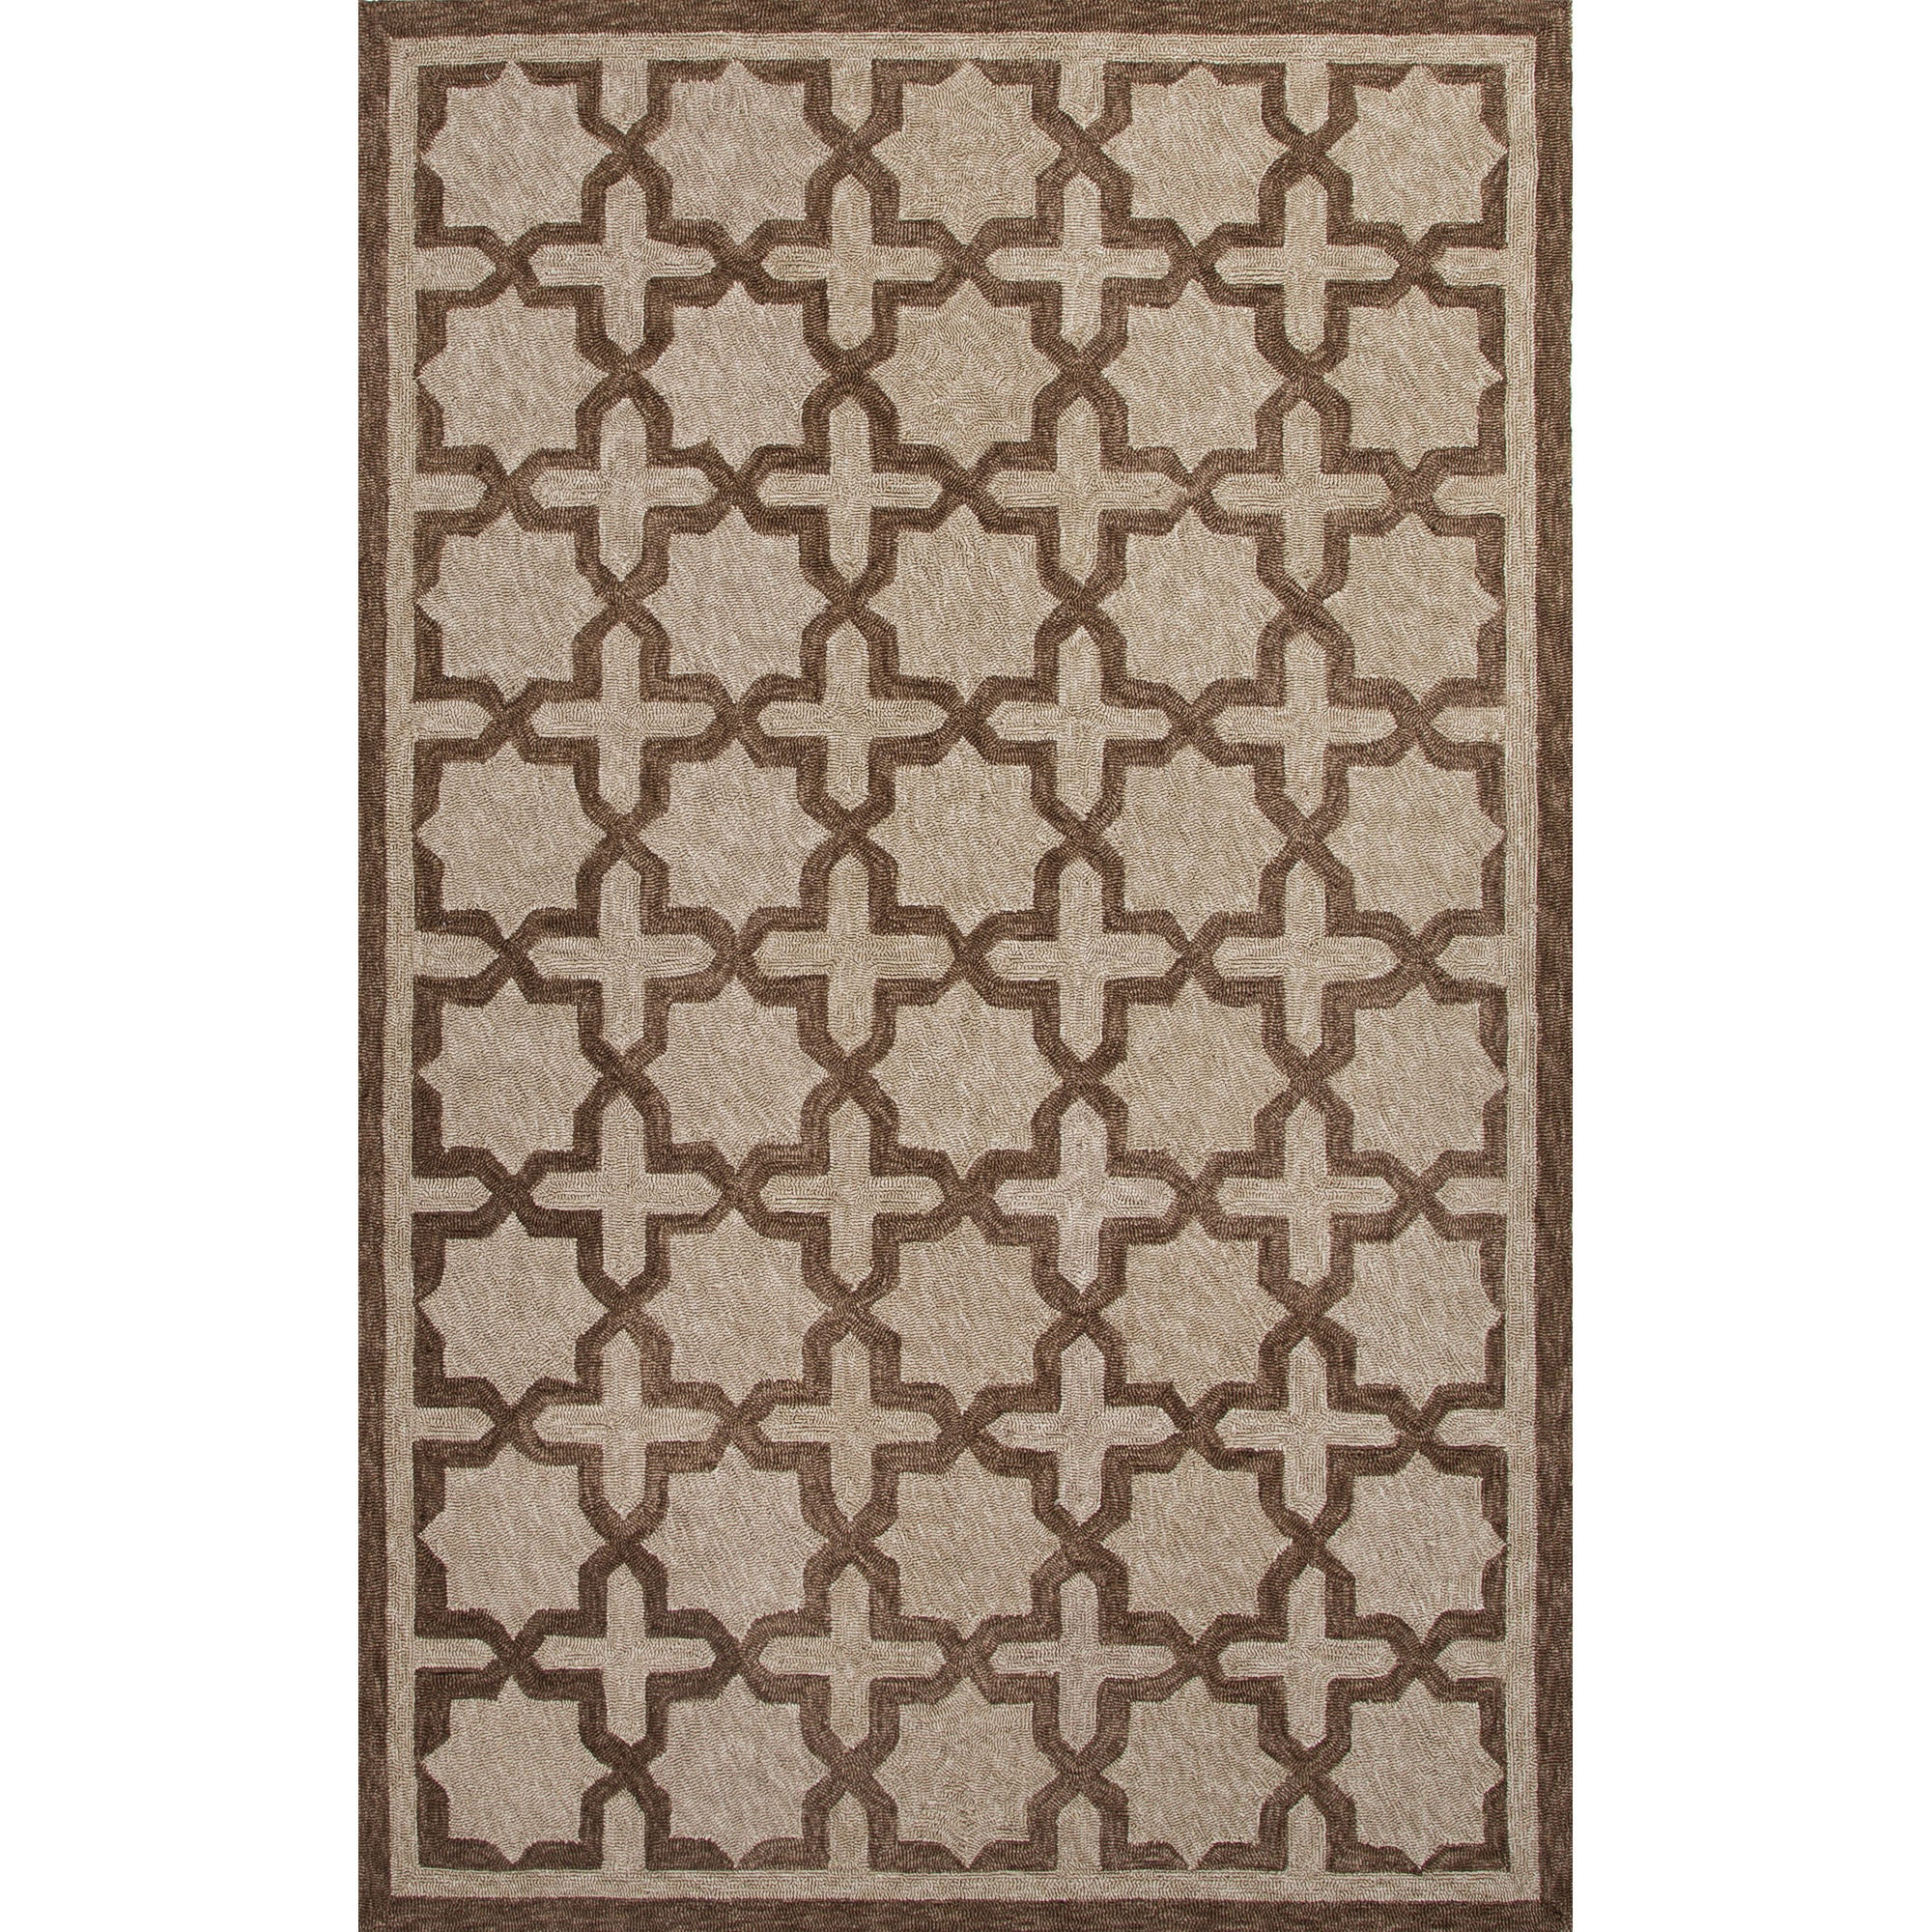 Jaipur Rugs IndoorOutdoor Moroccan Pattern Ivory/Brown